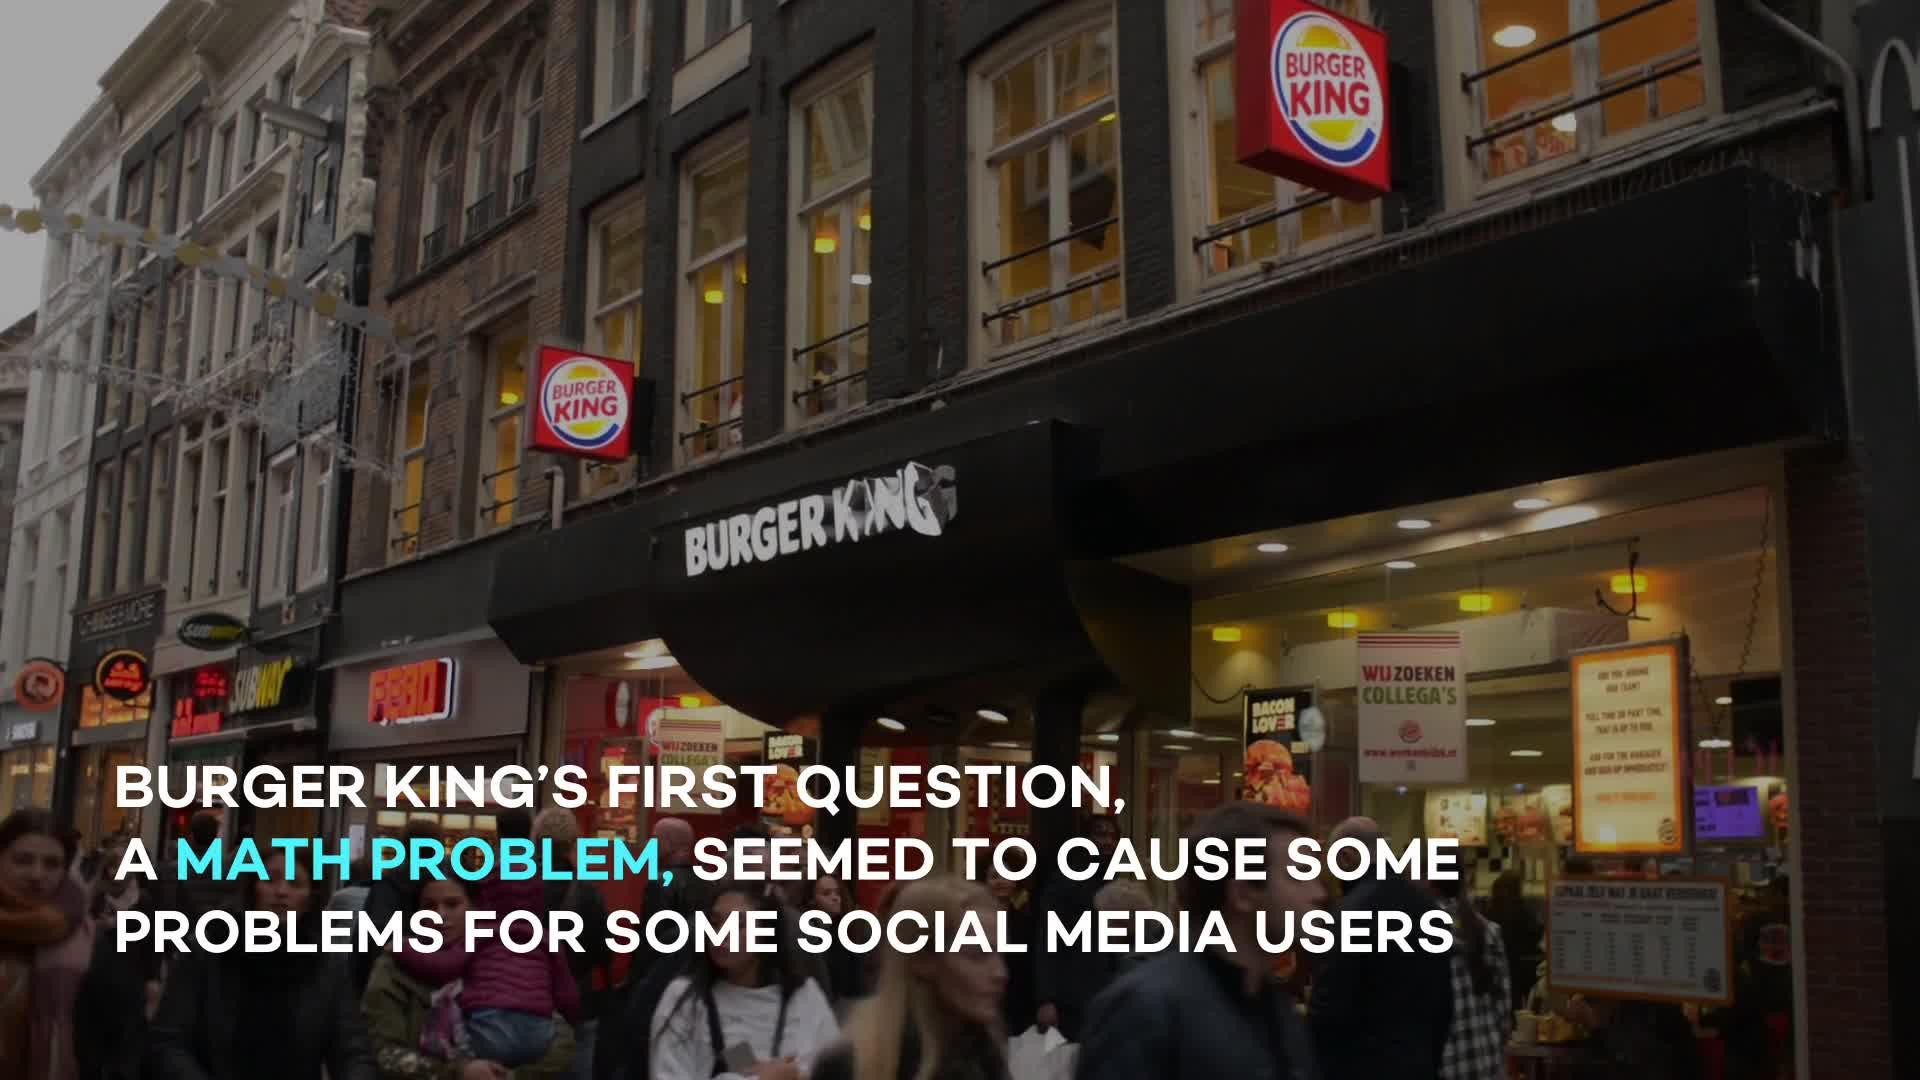 Burger King Is Giving Away Free Whoppers If They Can Pass A Images, Photos, Reviews